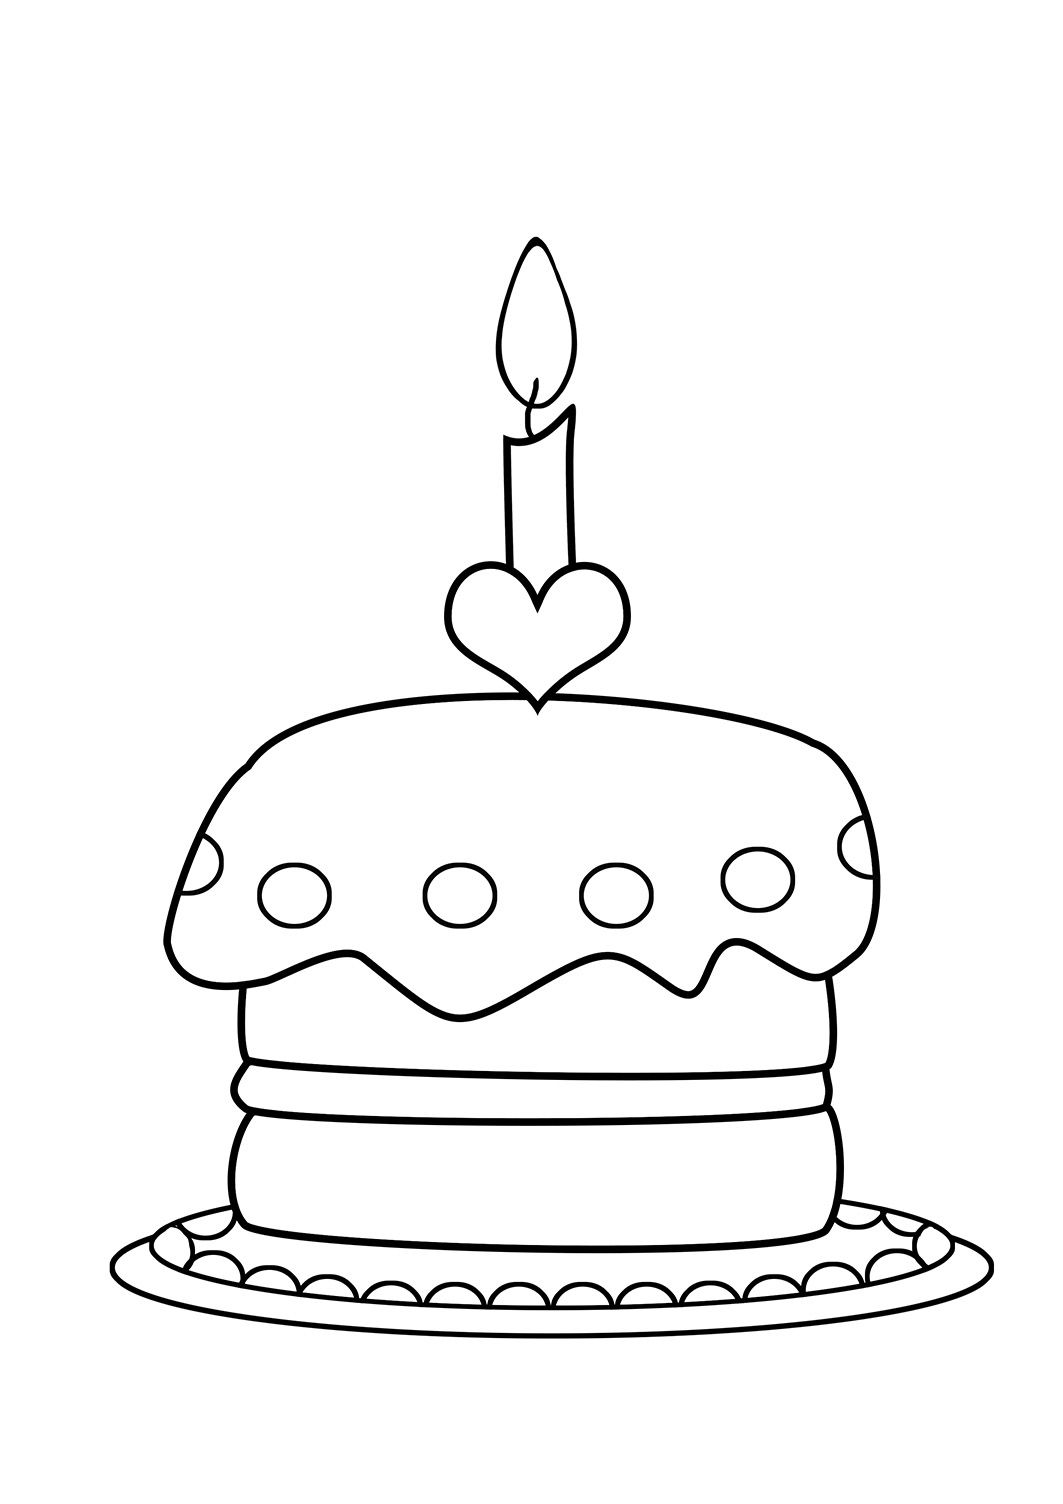 cupcake birthday coloring page | Birthday coloring pages ...